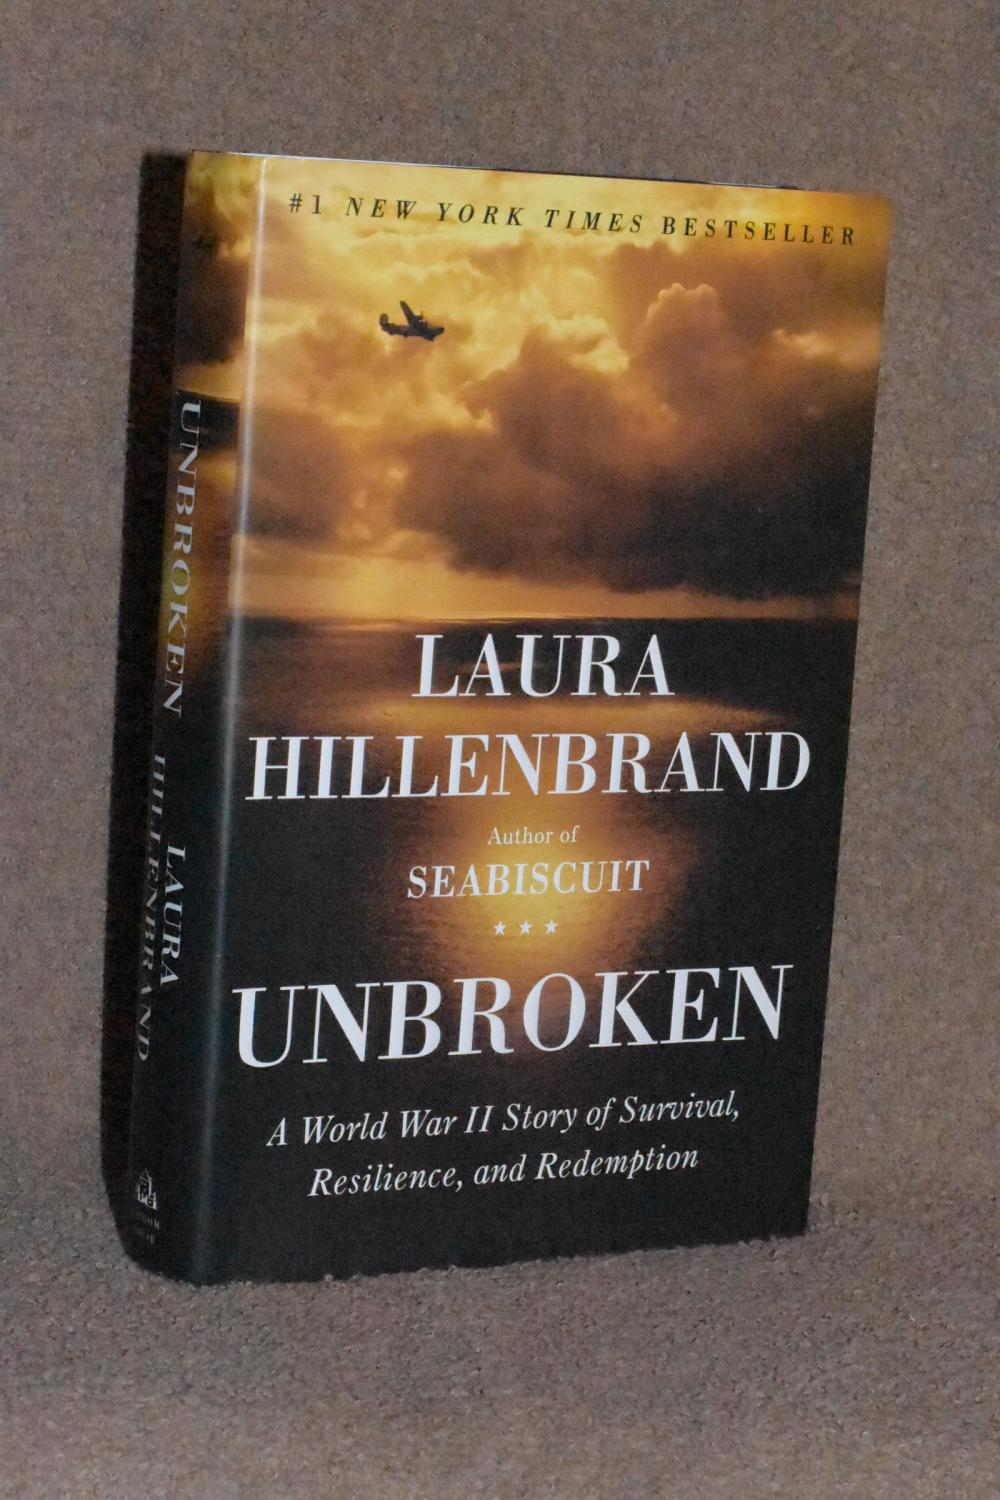 Unbroken; A World War II Story of Survival, Resilience, and Redemption